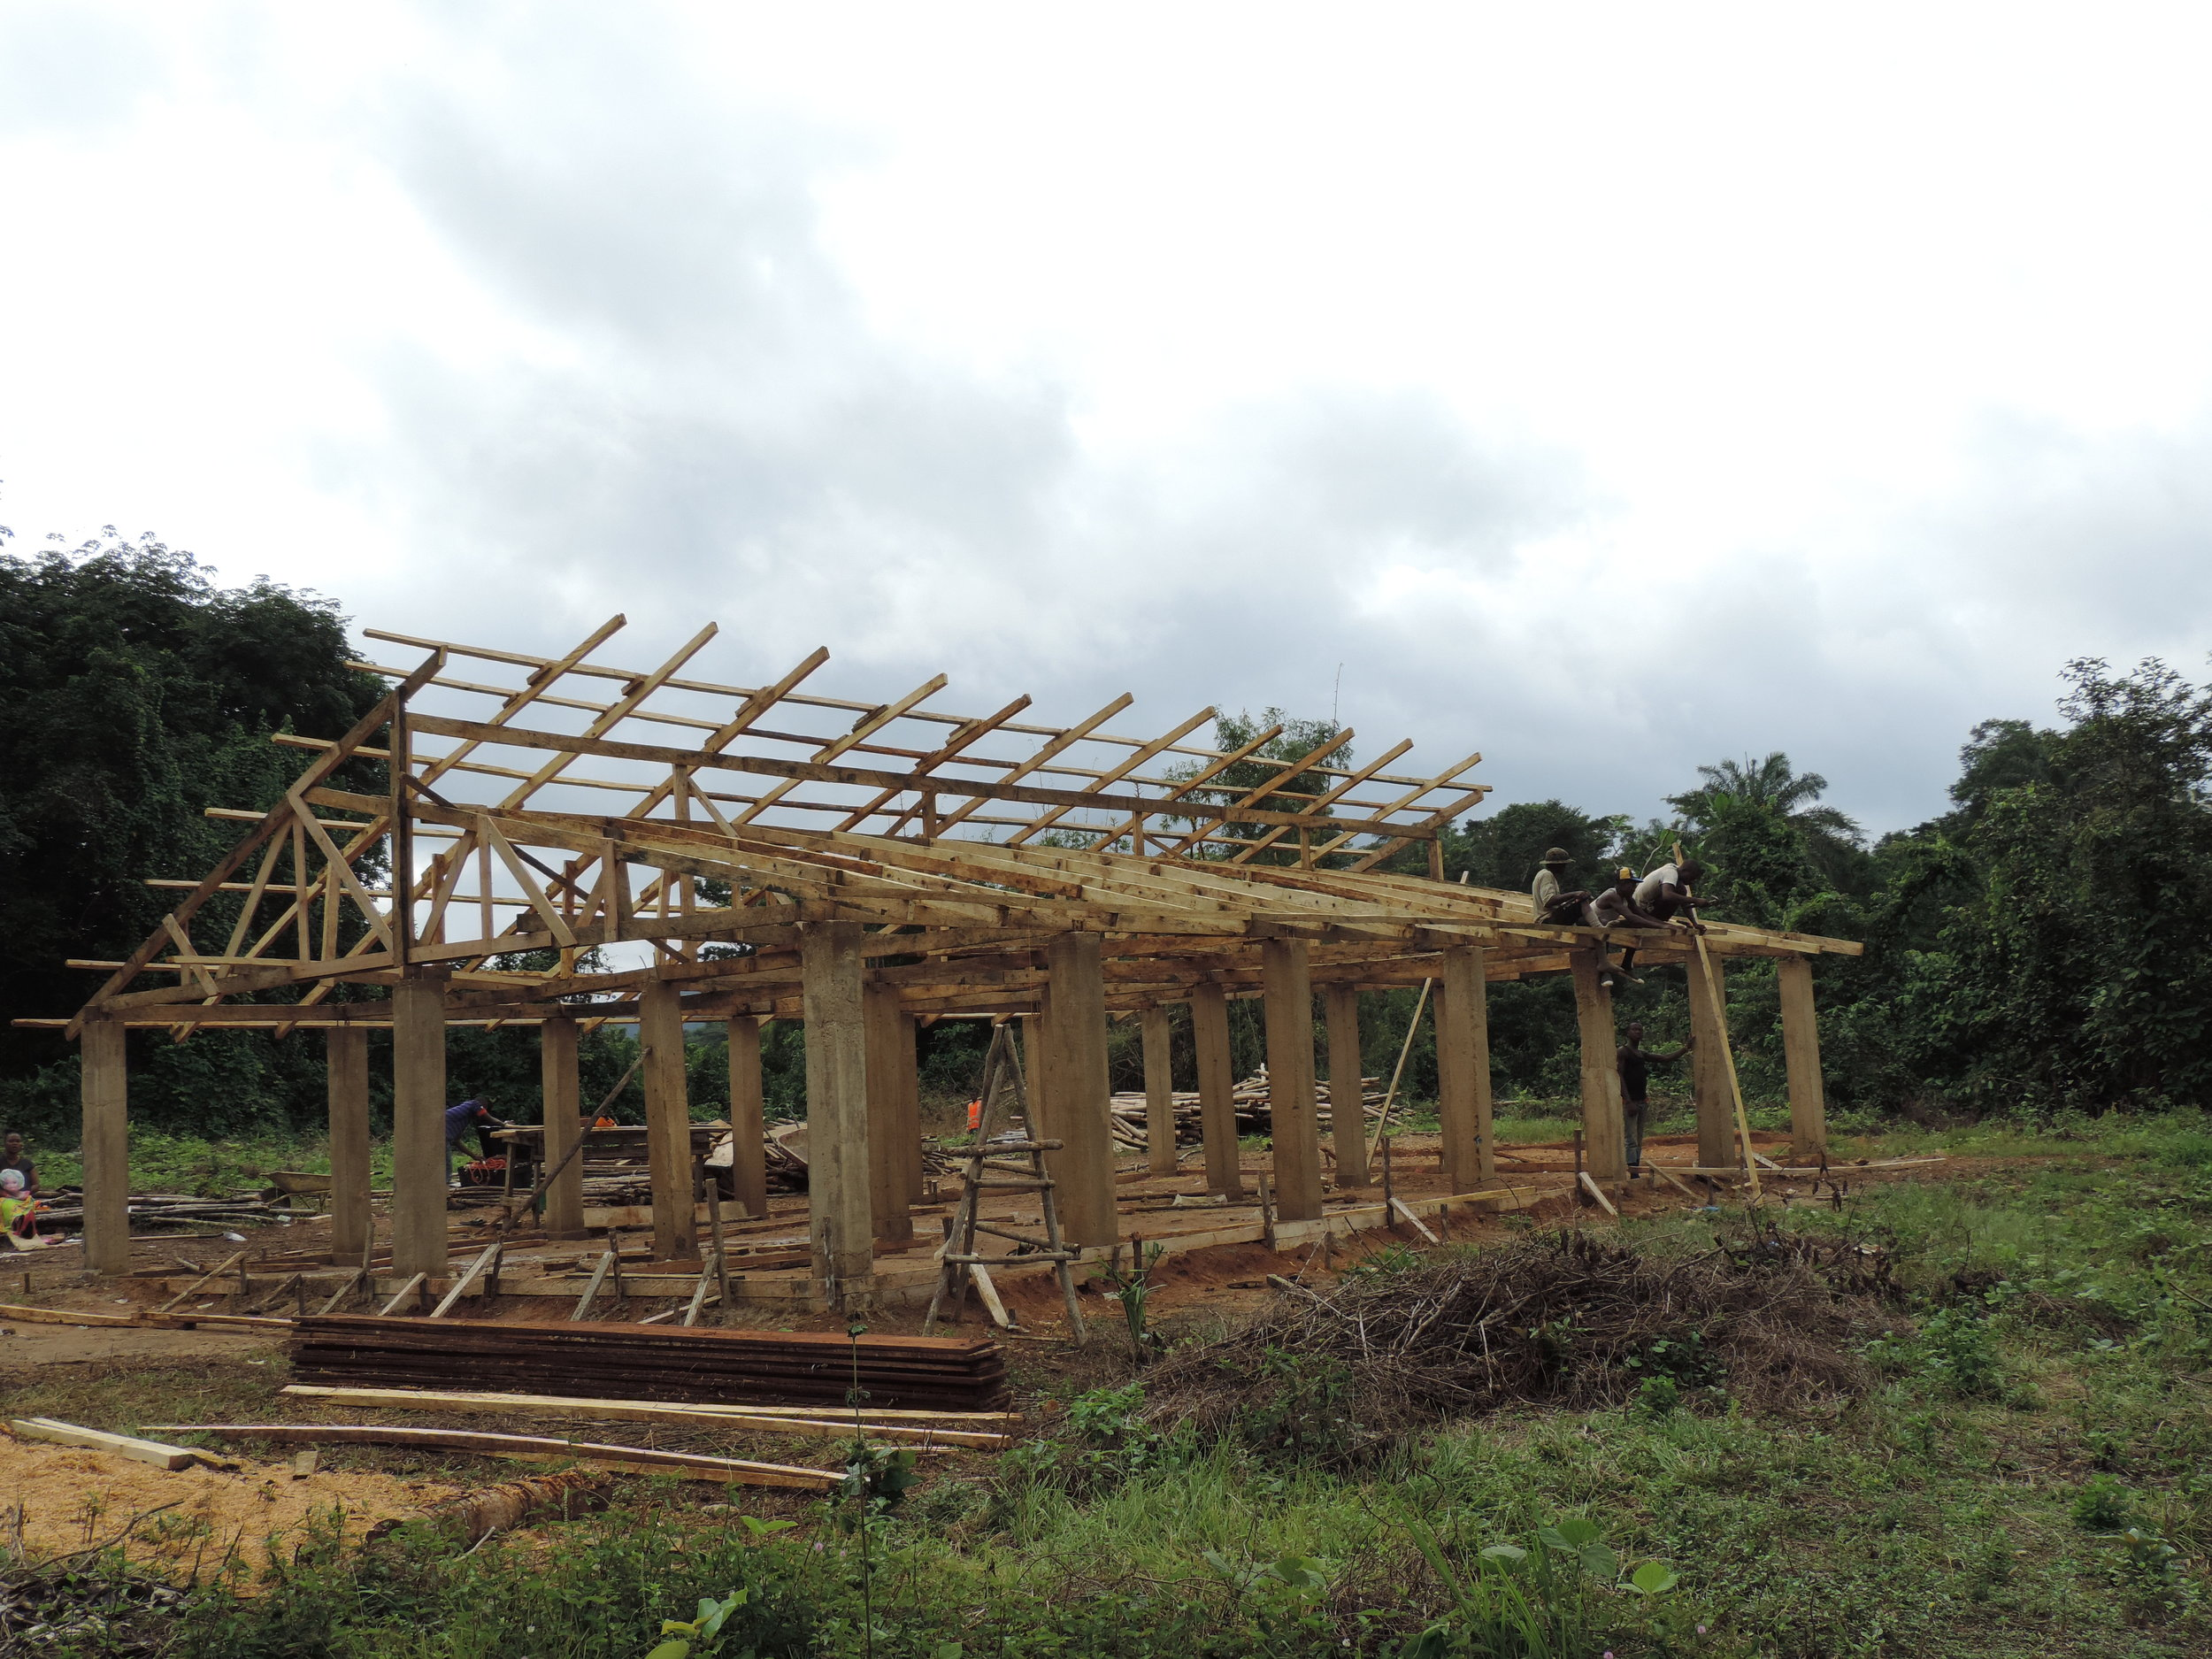 INFRASTRUCTURE RESTORATION - Our goal is to see rural Liberian villages flourish in freedom, as together we build a sustainable infrastructure to cultivate renewal and healthy communities. This means that we also help develop the basic physical needs for sustainable living which may include access to renewable food supplies, clean water, safe shelter, sanitation, education, medical care and more.